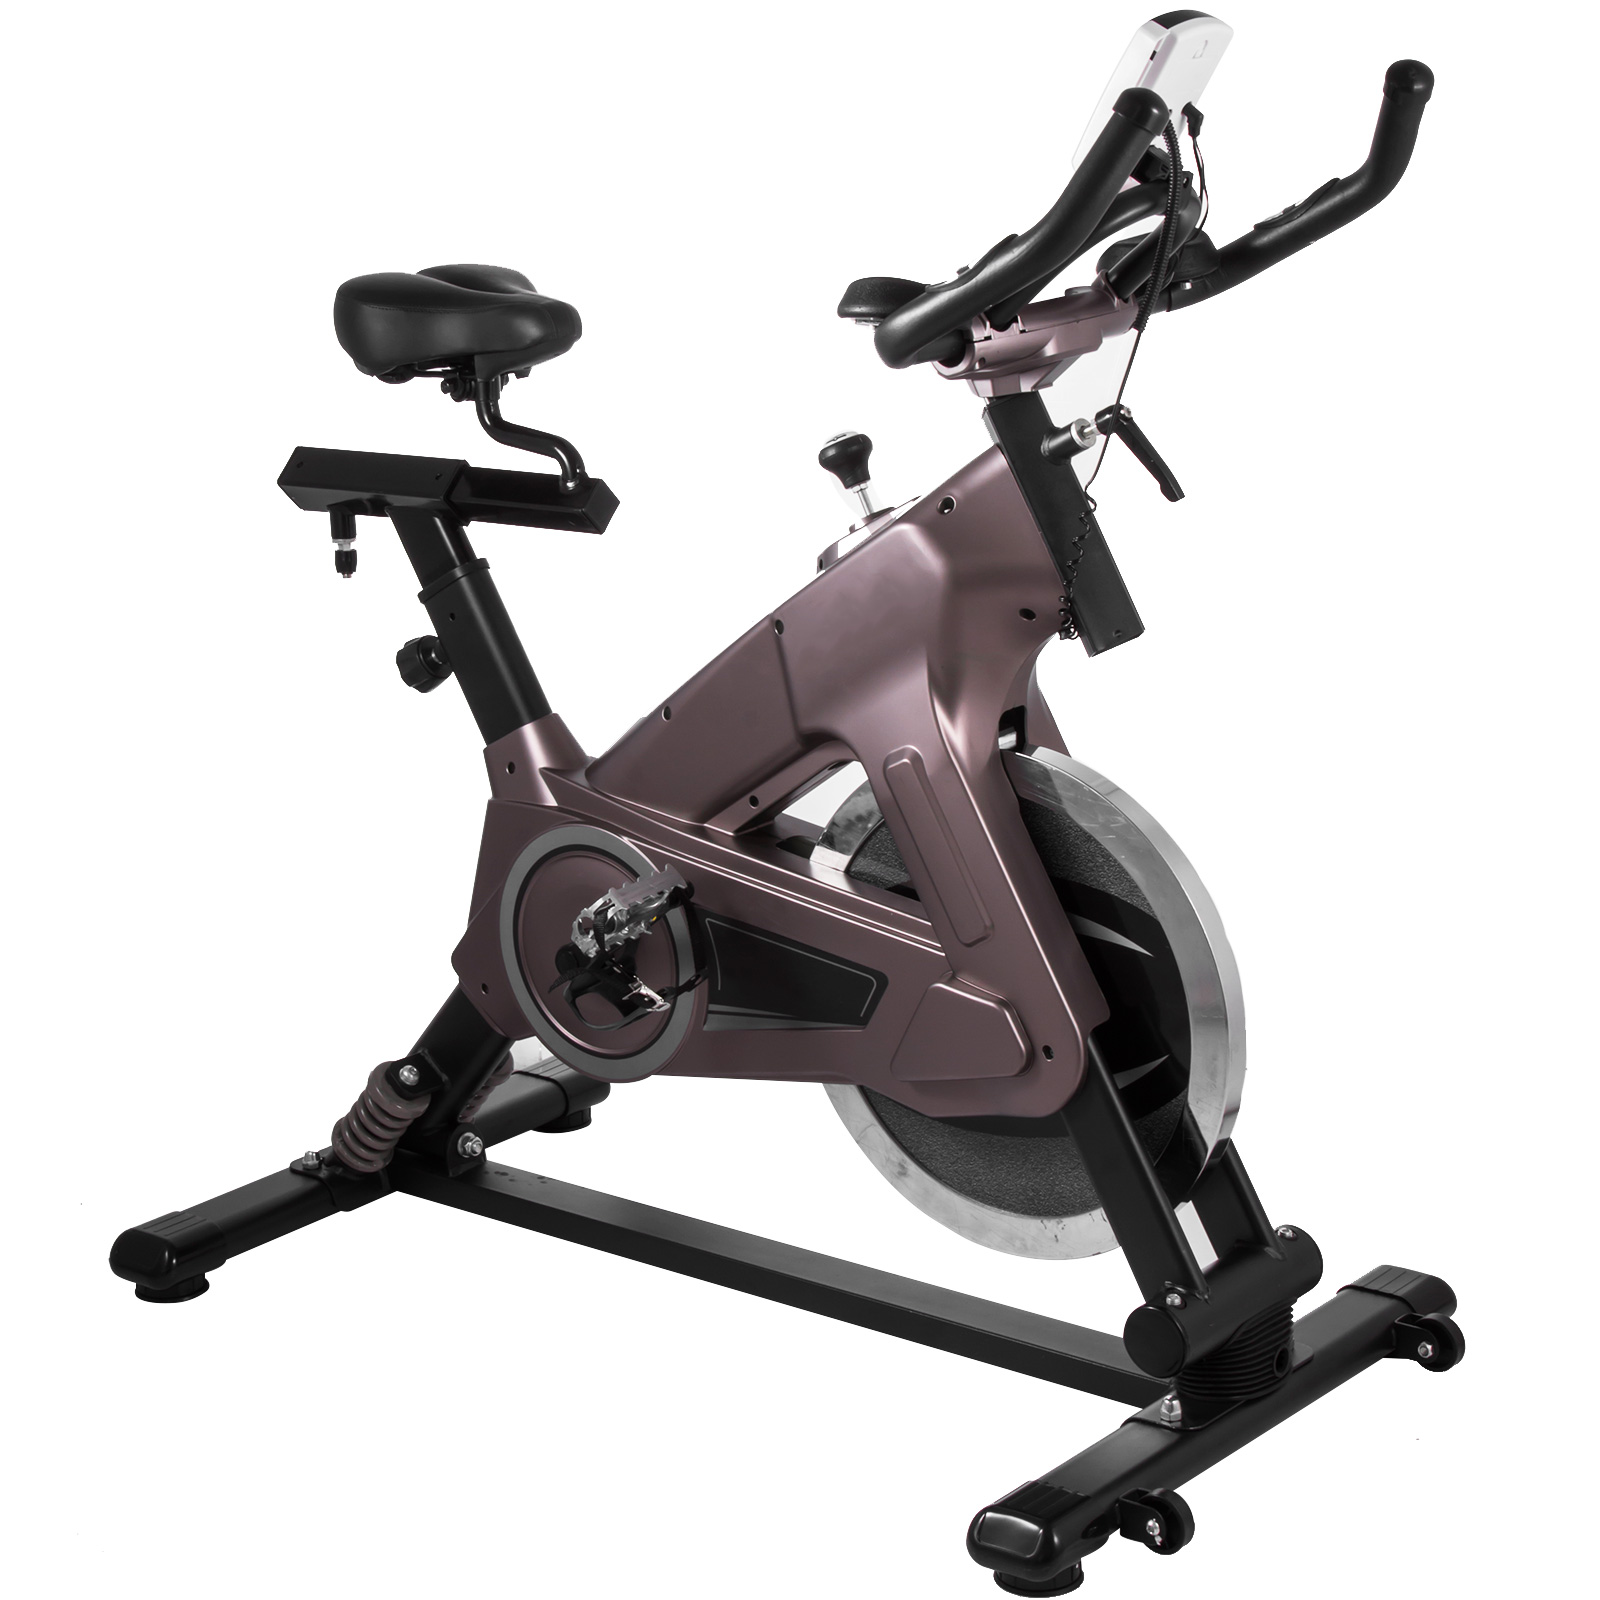 Multi-style-Magnetic-Exercise-Bike-office-Bicycle-under-Desk-Fitness-Cardio miniature 177